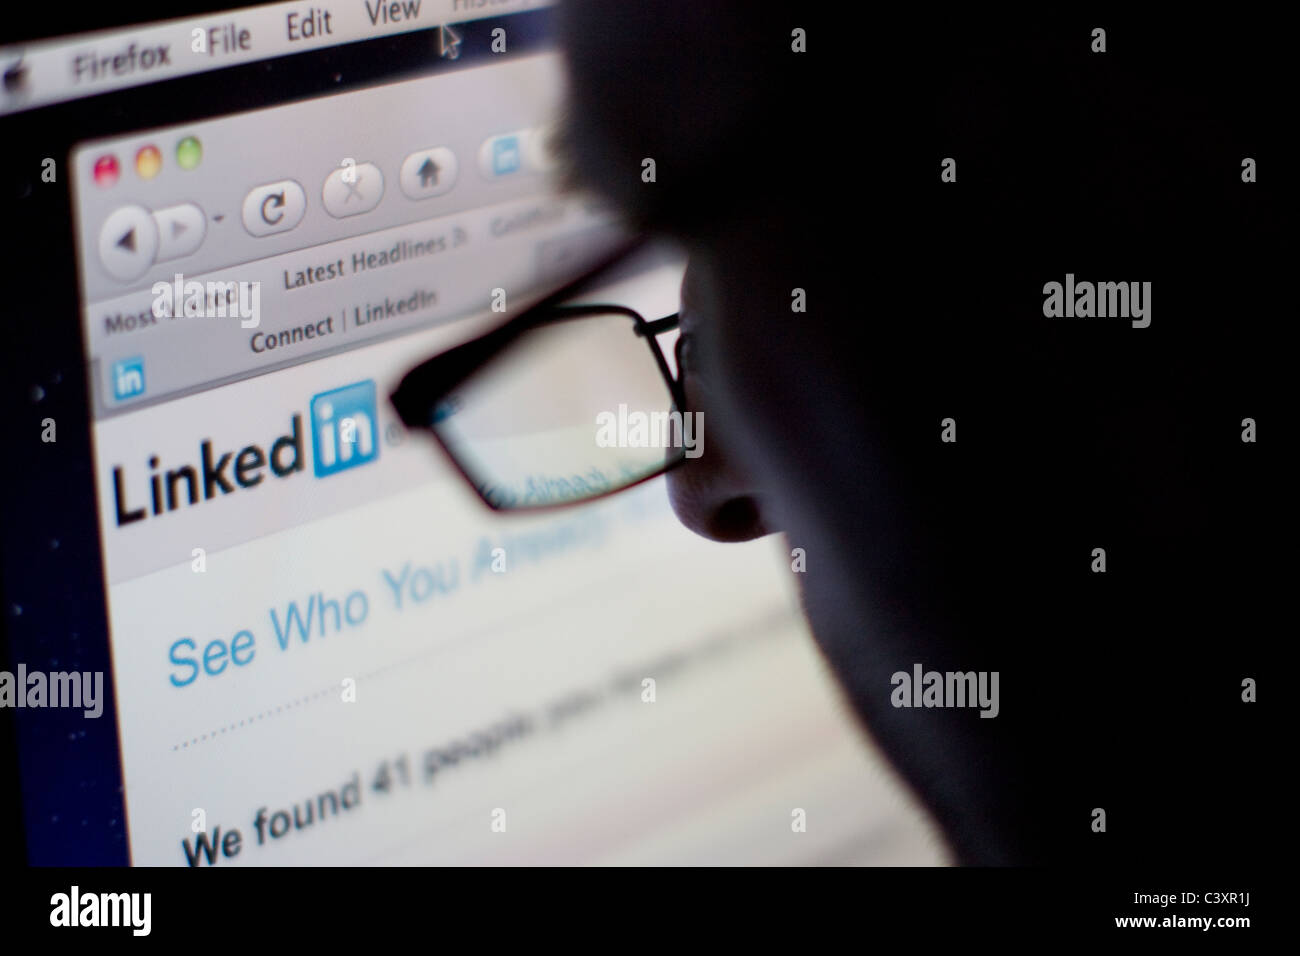 Linkedin linked in website internet proffesional social network site Male surfing linkedin website - Stock Image